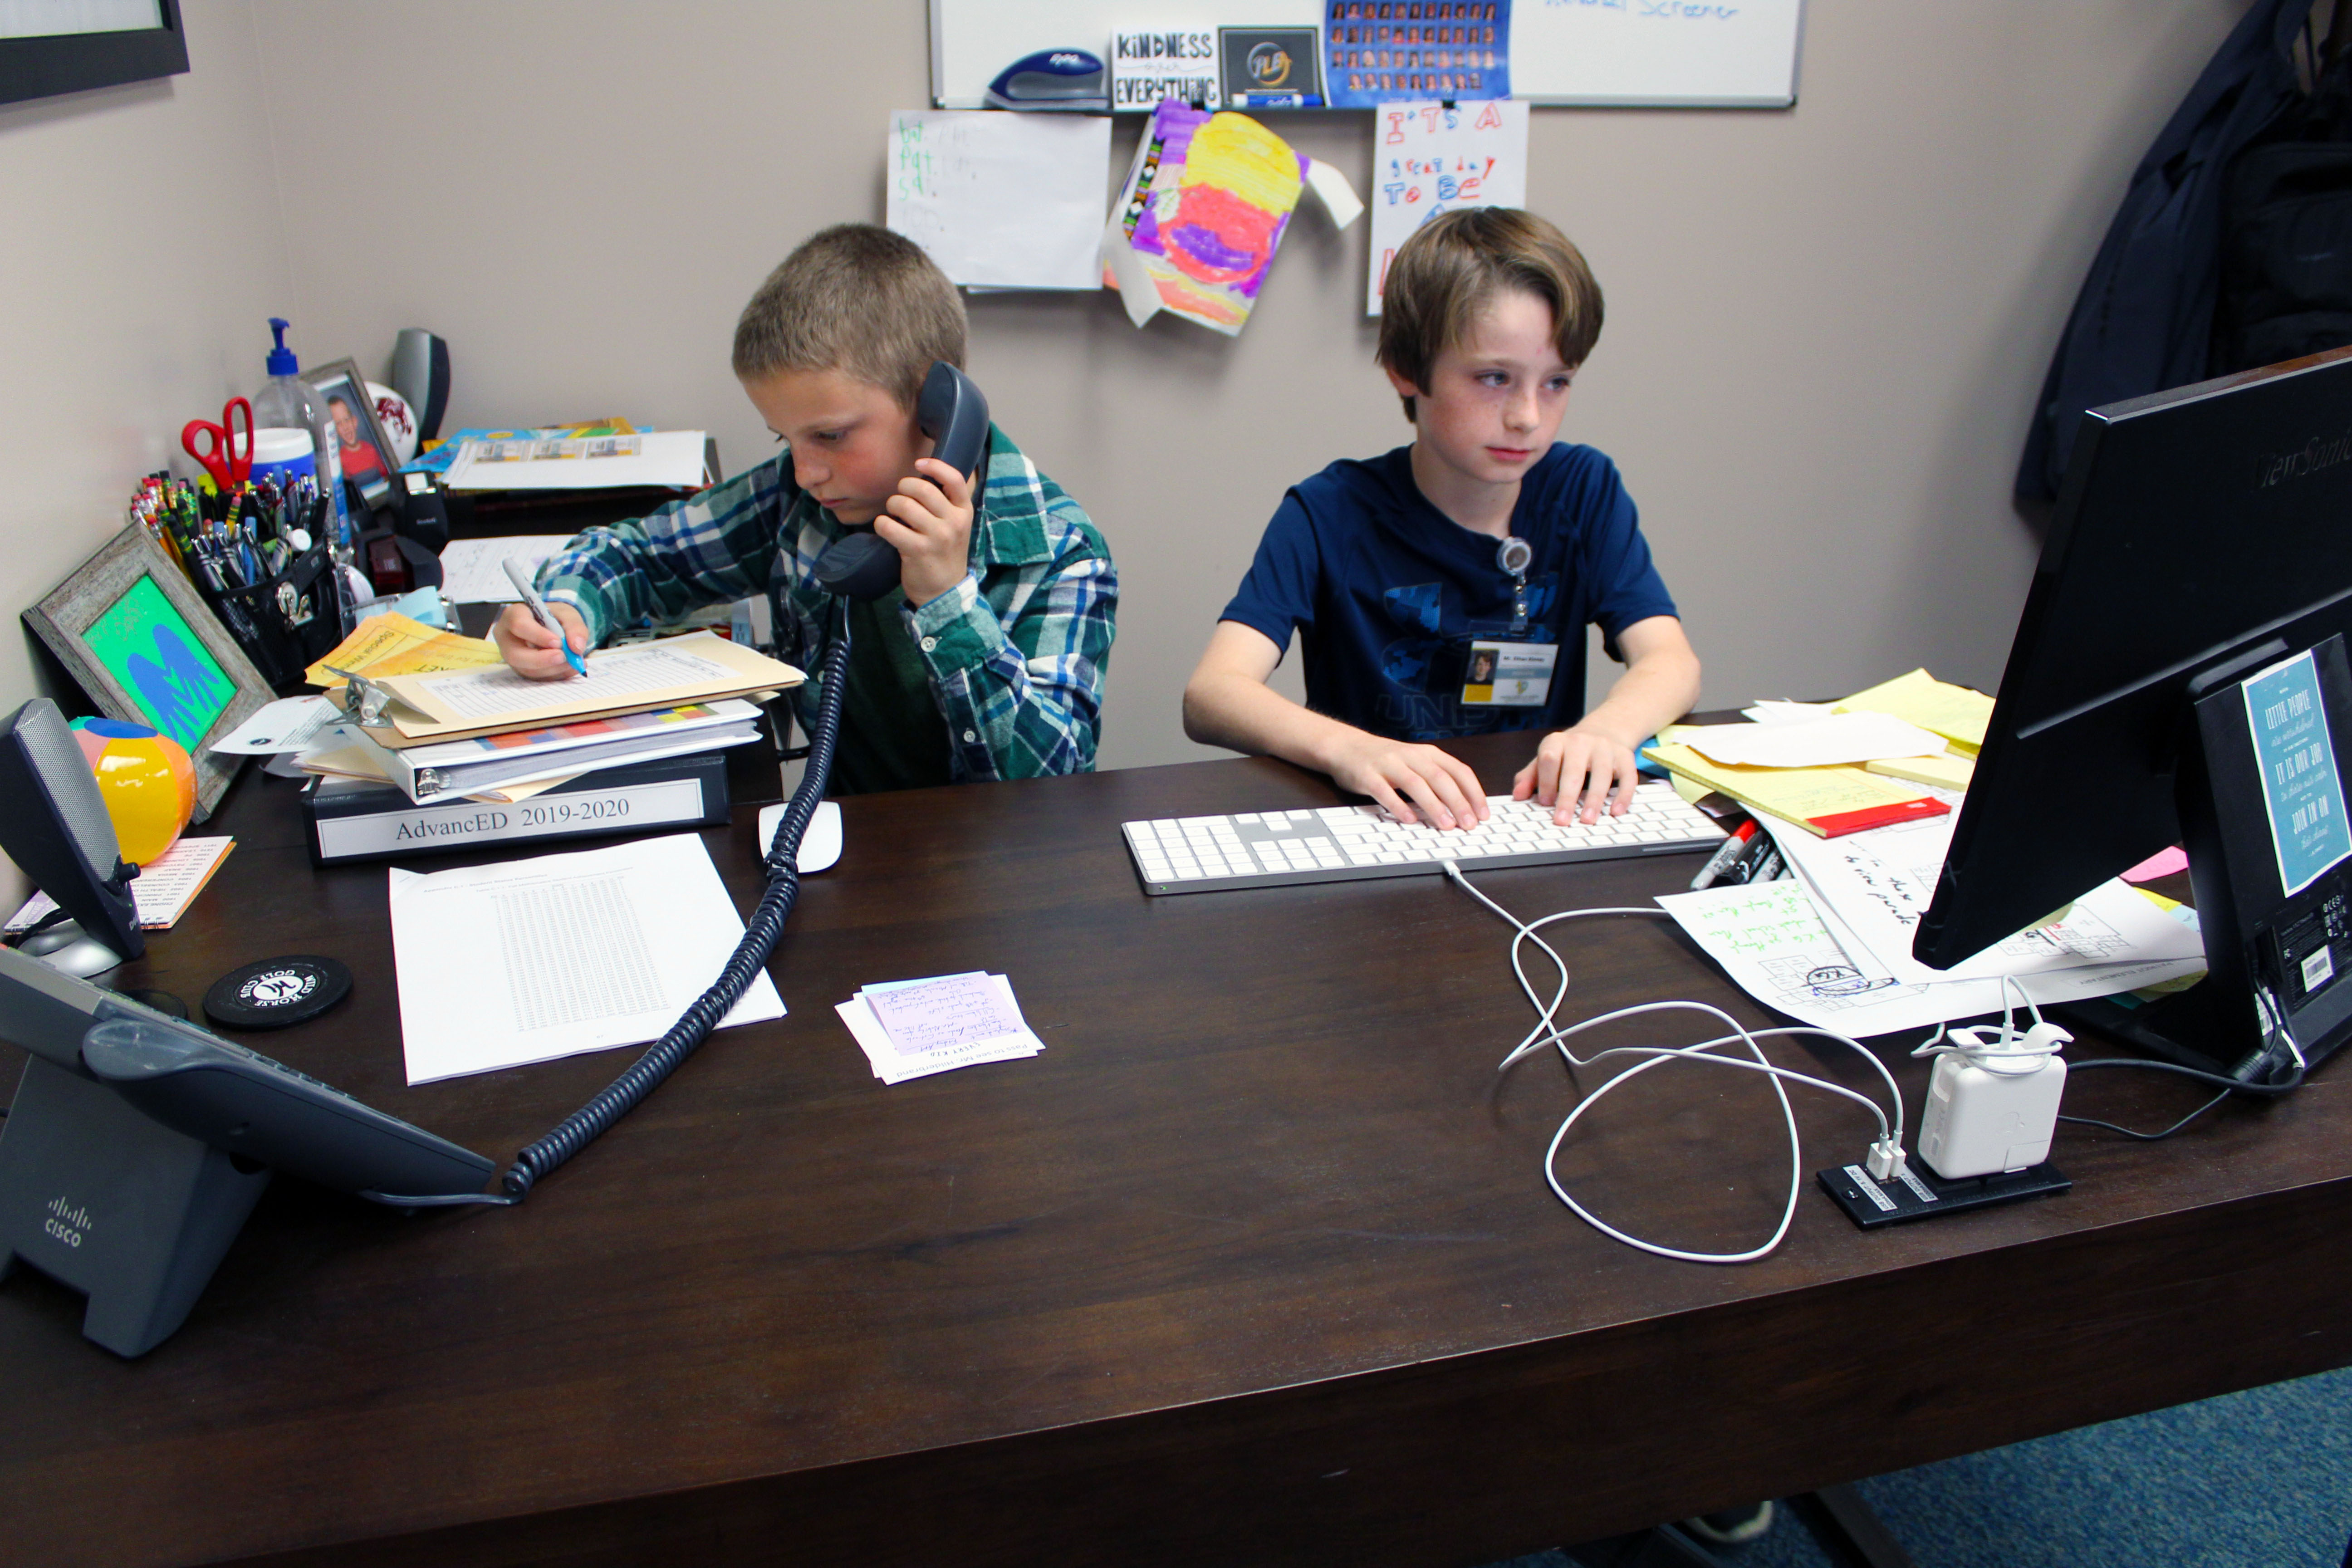 Students were selected to be principals for a day